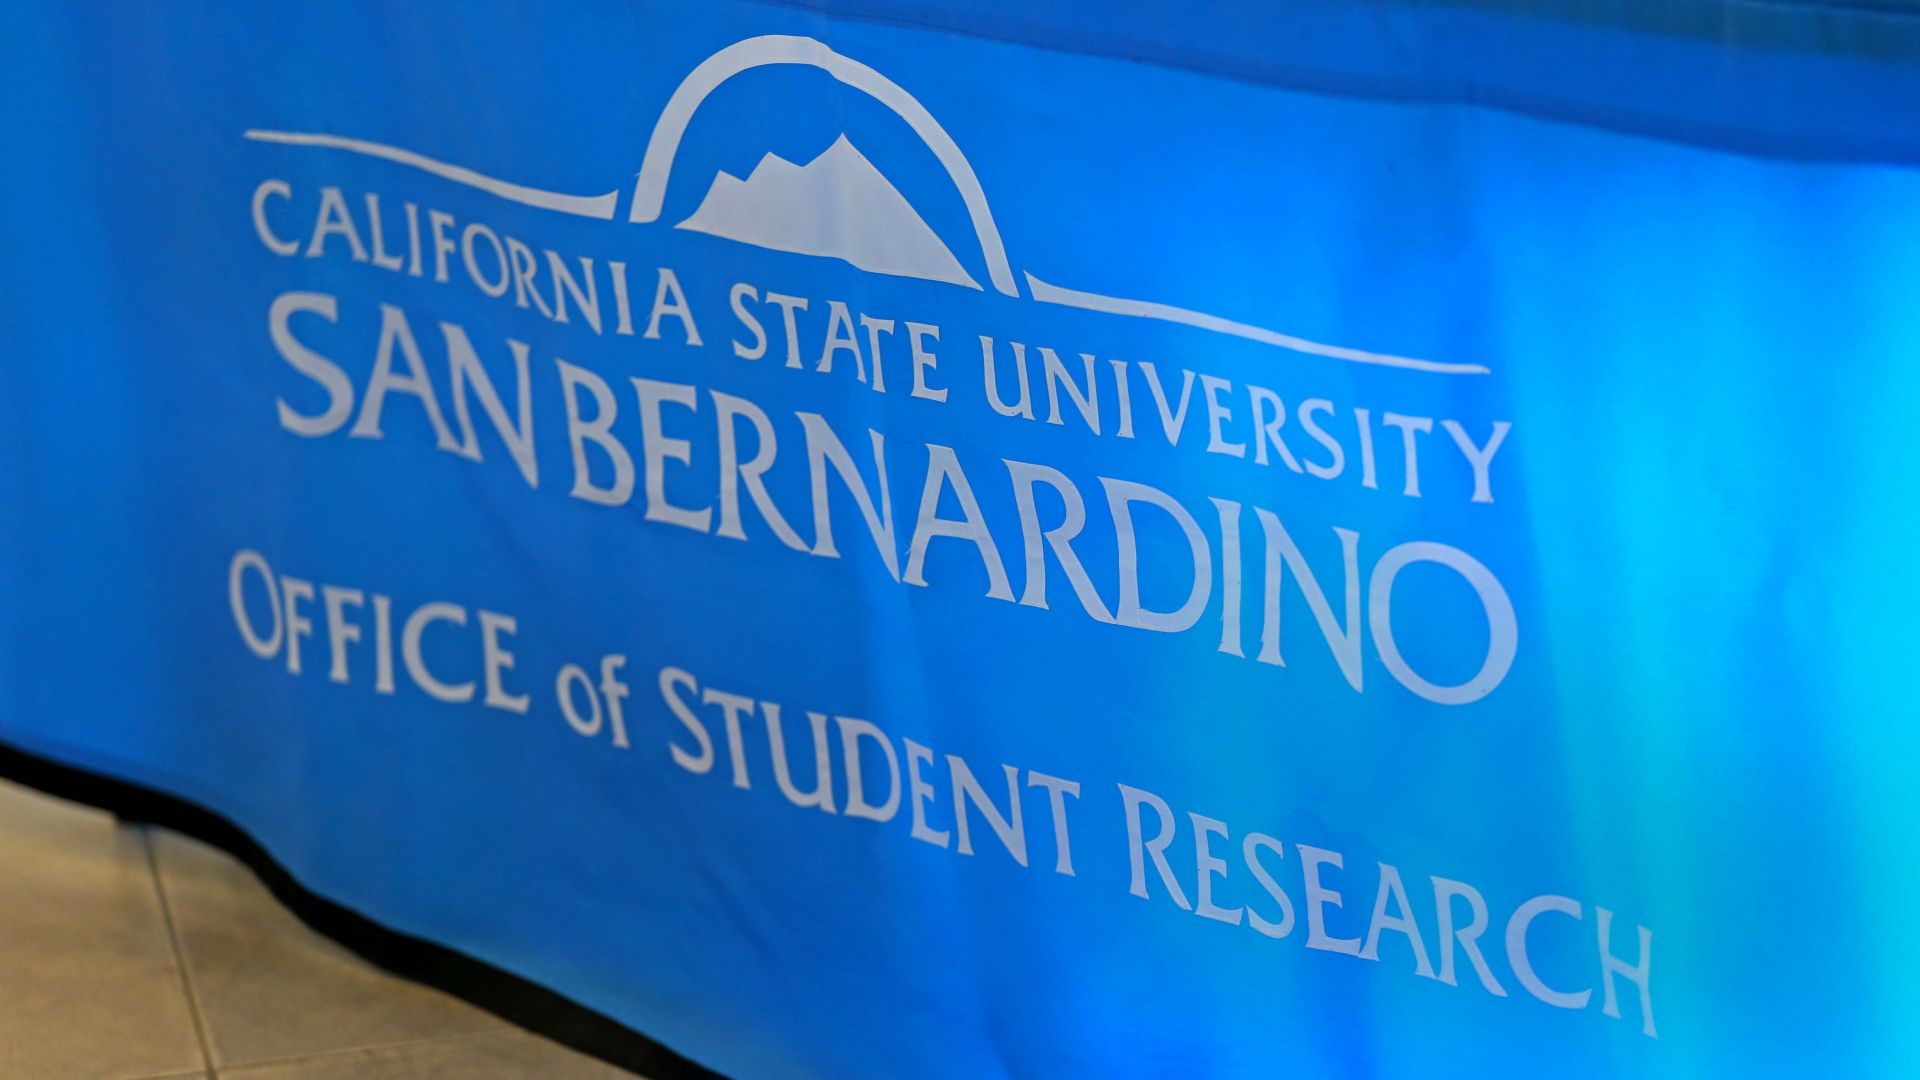 The 10 students will showcase their work at the 35th annual California State University Student Research Competition on April 30-May 1.